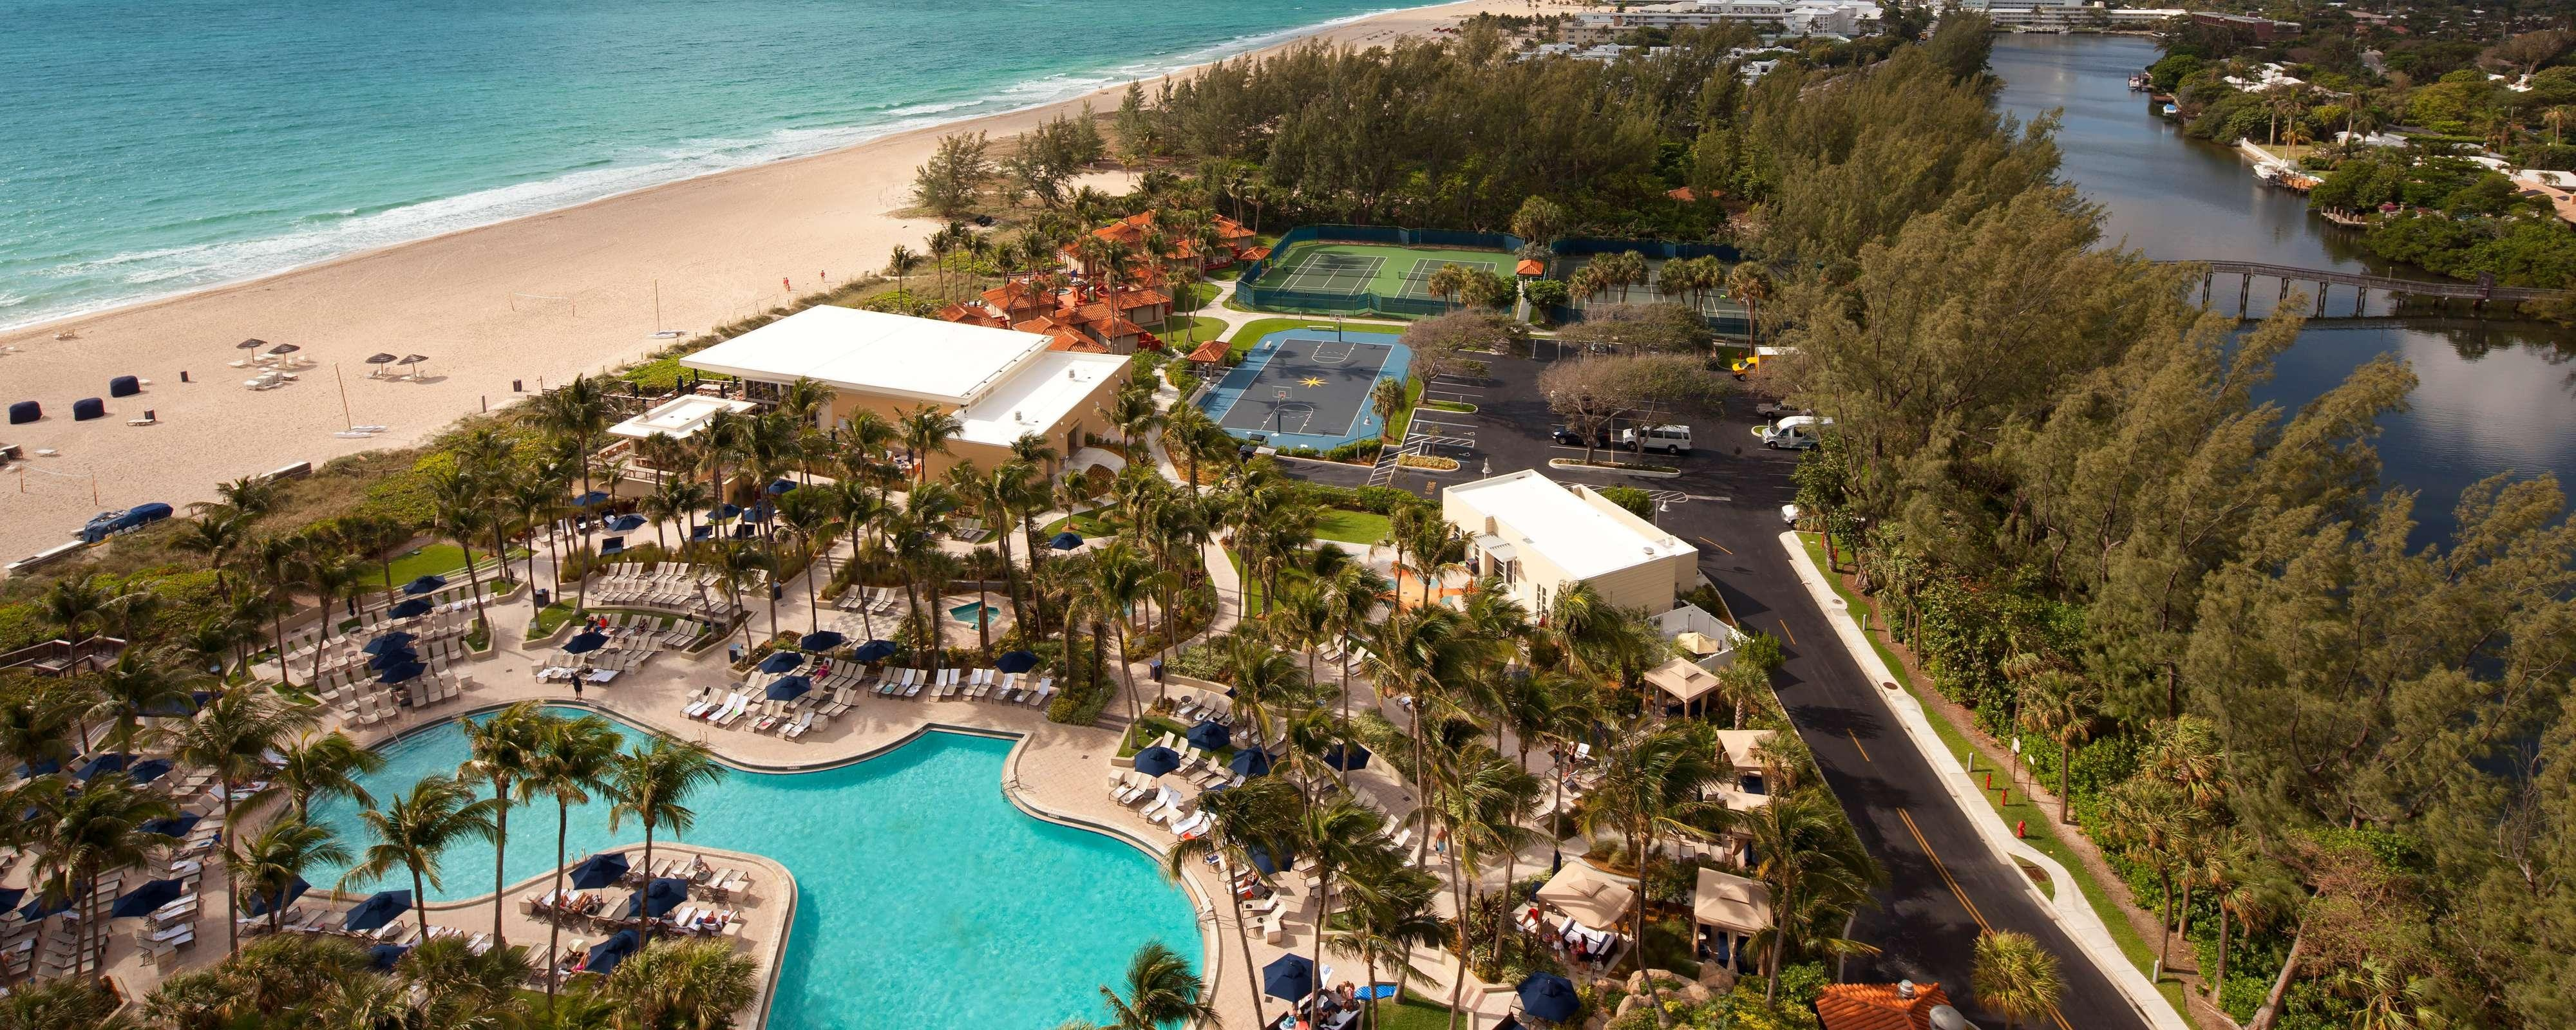 Outdoor Pool & Beach Aerial